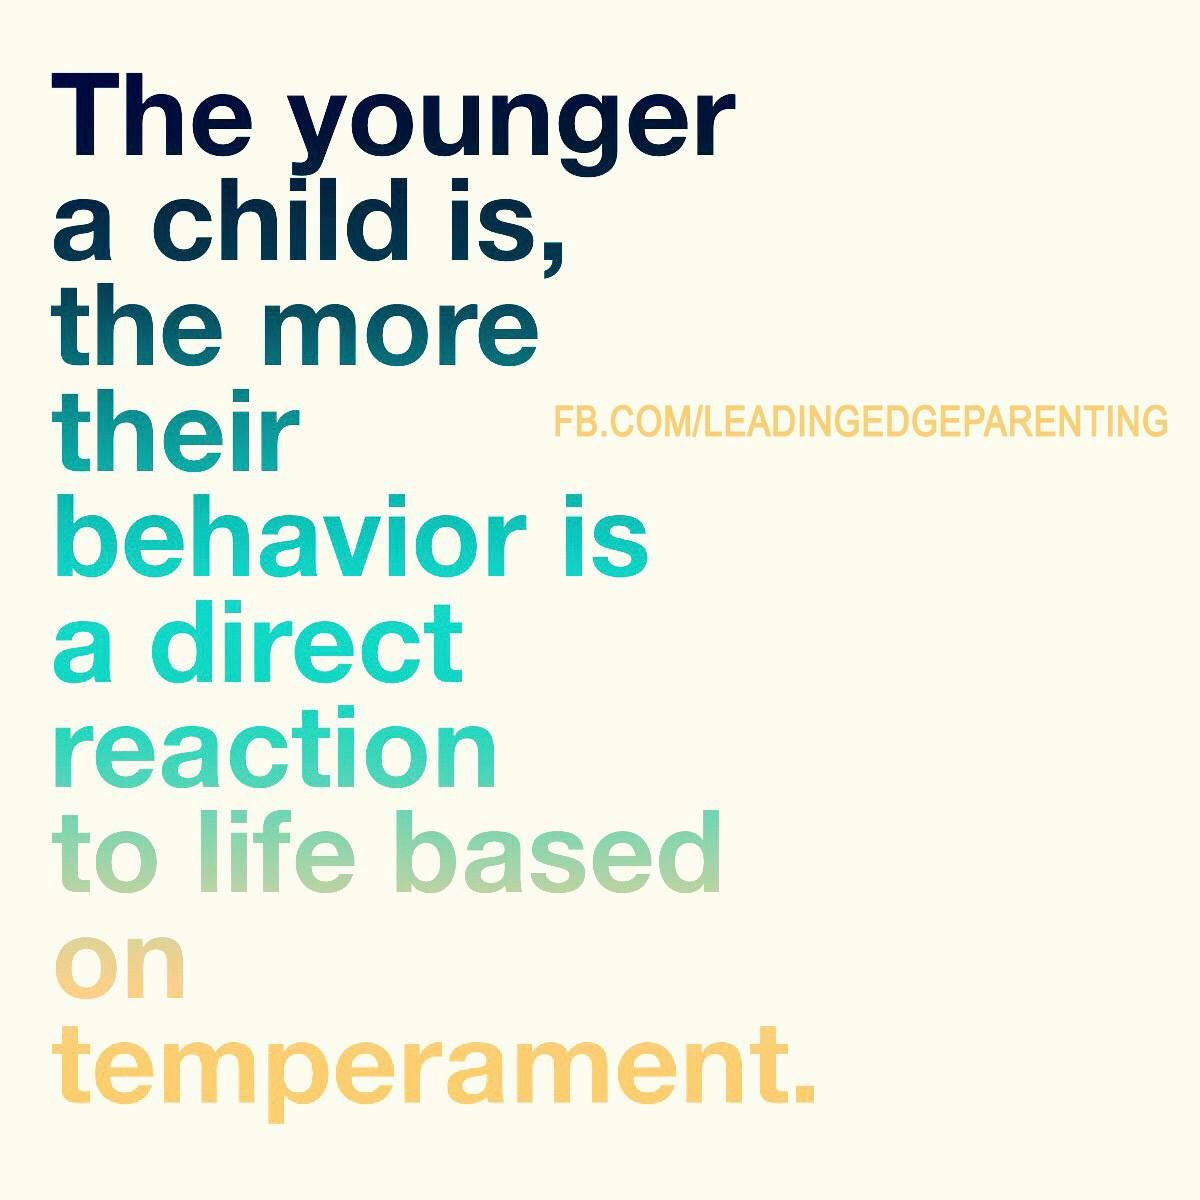 Parents have told me that their AHA moment began when they learned about the traits of temperament. It explained so much of their children's behavior and was the tipping point for learning how to respond to their parenting challenges. Is anyone out there interested in learning this stuff? I promise that it will 'rock your parenting world!'